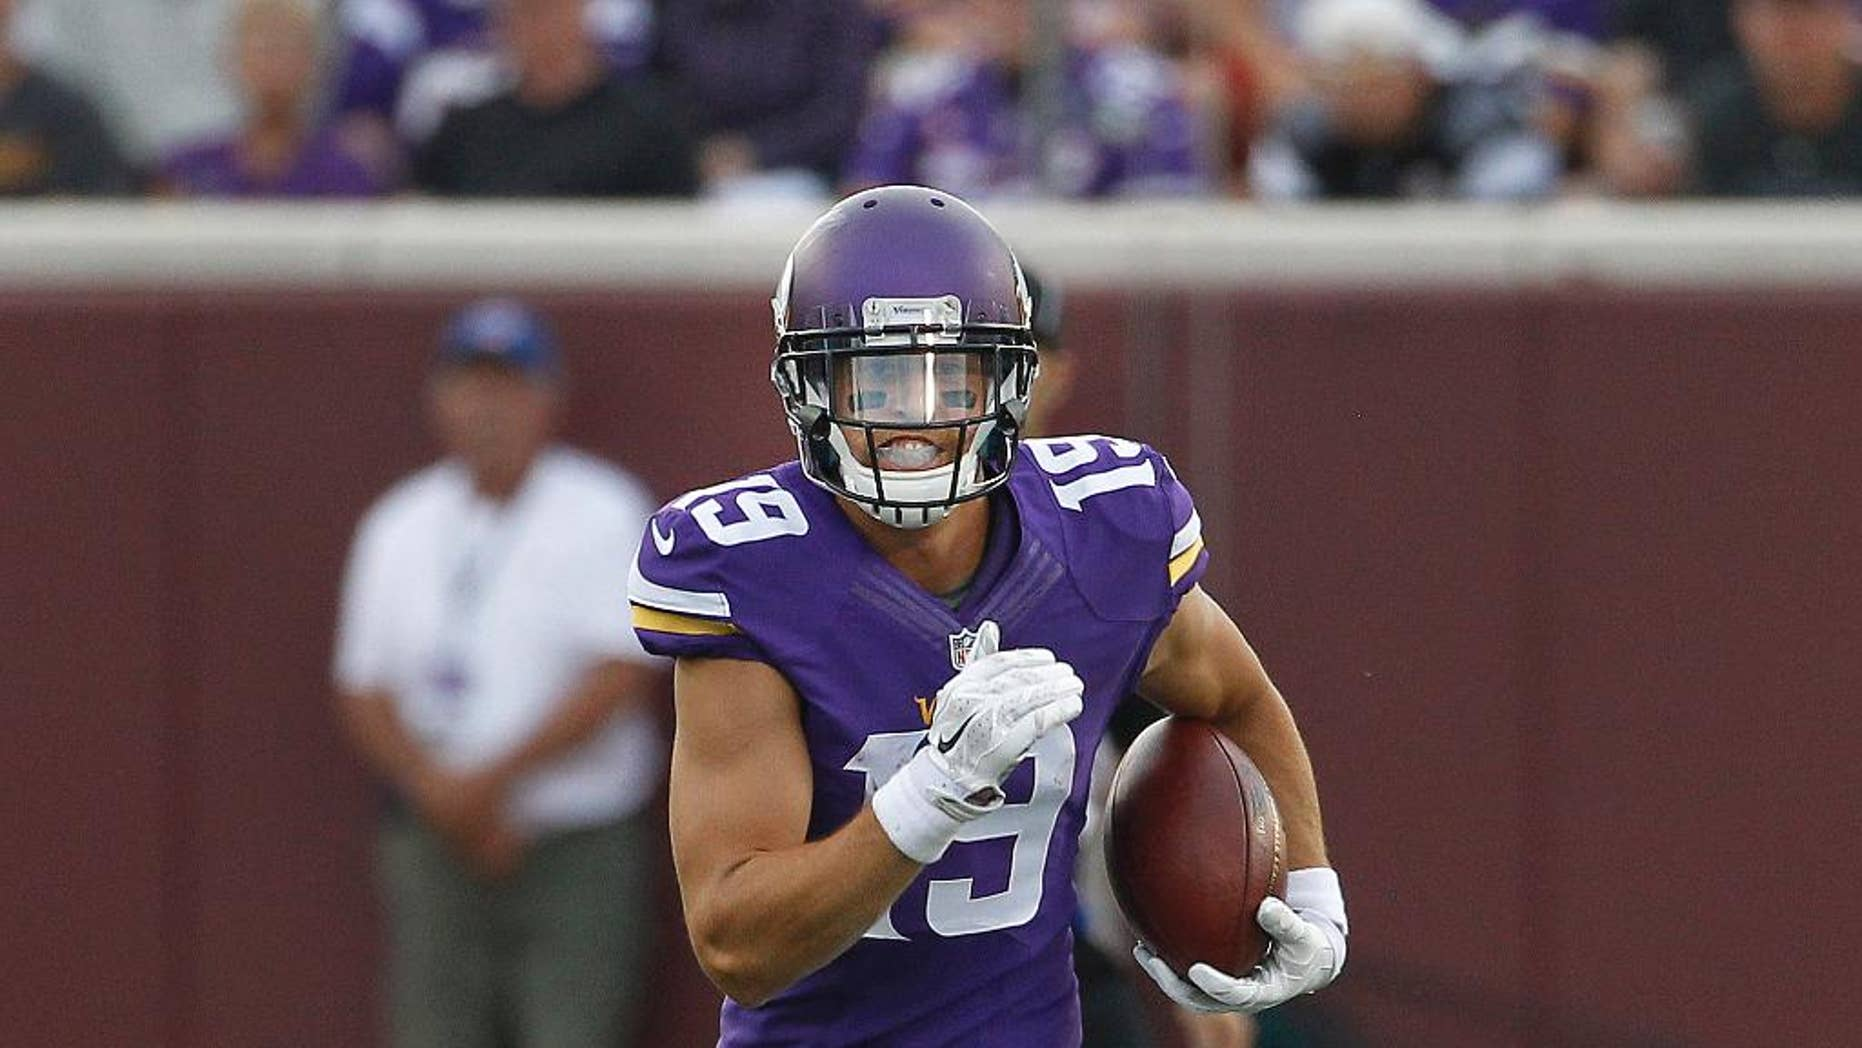 FILE - In this Aug. 8, 2014, file photo, Minnesota Vikings wide receiver Adam Thielen (19) runs the ball against the Oakland Raiders in the first half of a preseason NFL football game at TCF Bank Stadium in Minneapolis. After making a strong enough impression as an undrafted rookie last year to land a spot on the practice squad with the Vikings, Thielen has put himself in position to make the active roster this season.  (AP Photo/Ann Heisenfelt, File)